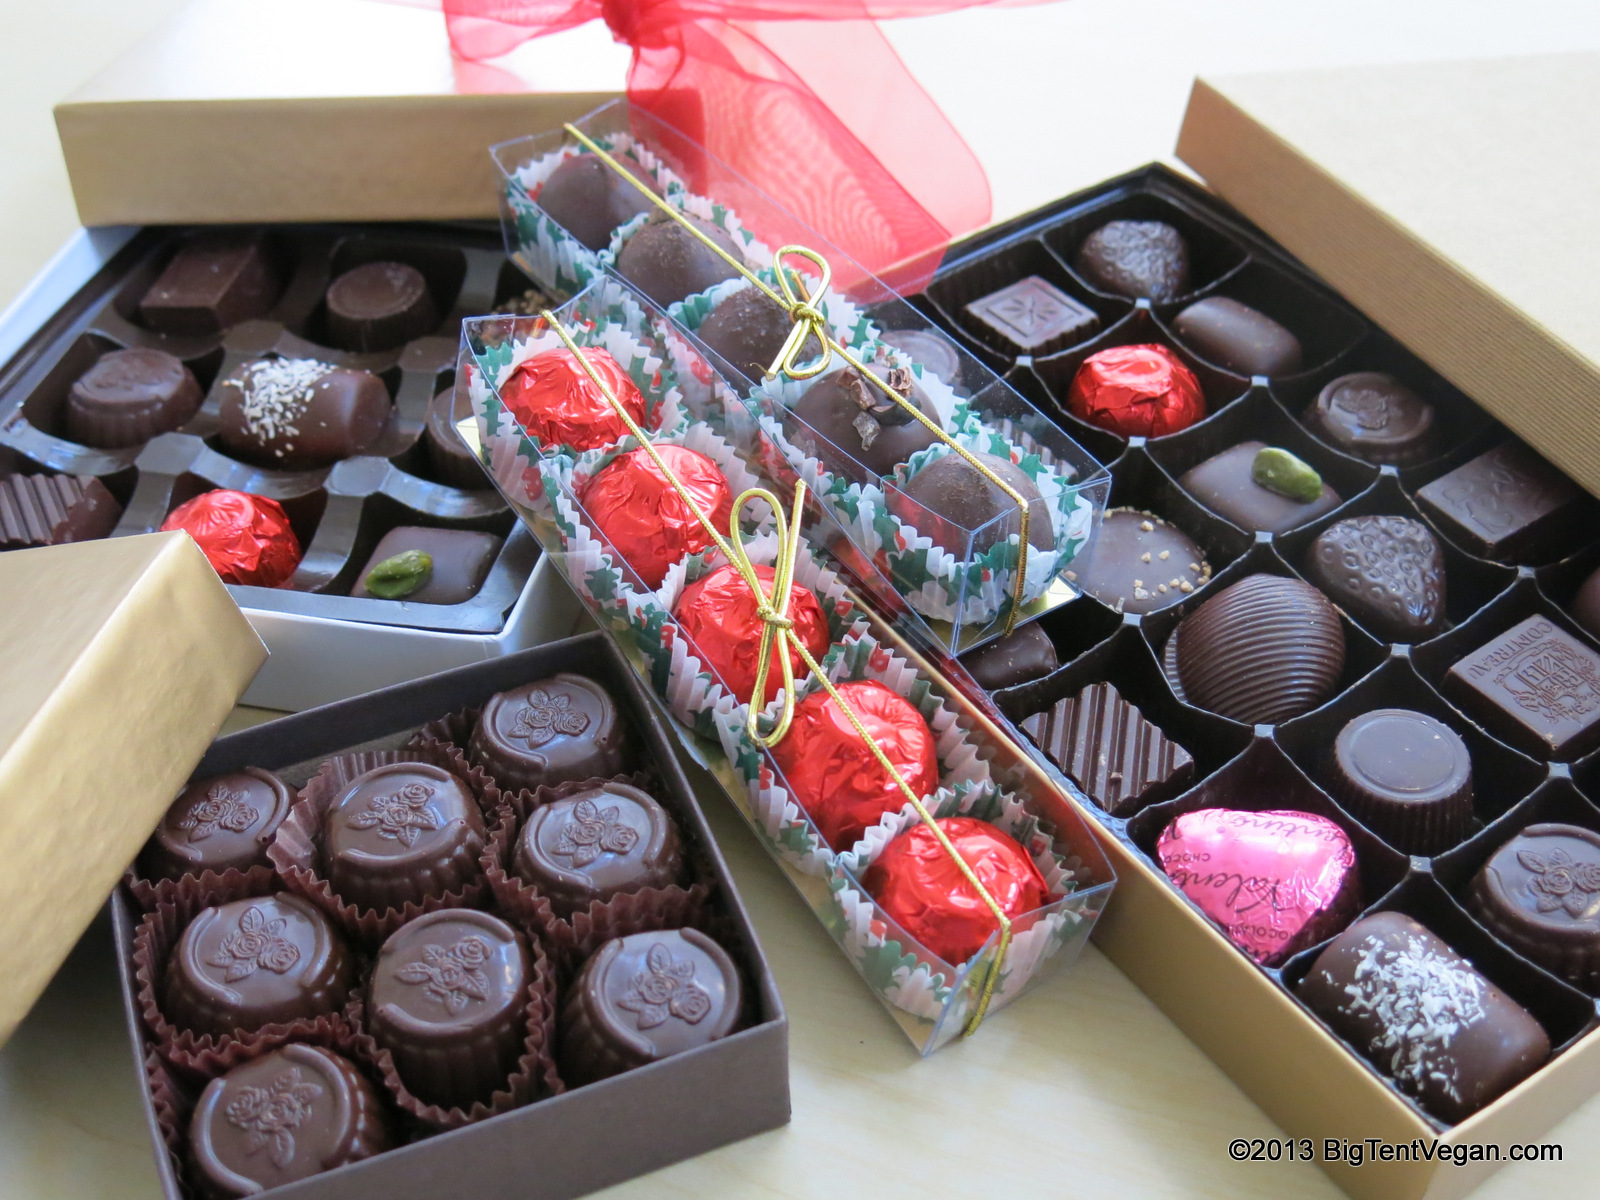 Cordial Cherries, Truffles, Mint Creams, and Assorted Chocolates from Rose City Chocolatier (Martinsburg, WV)